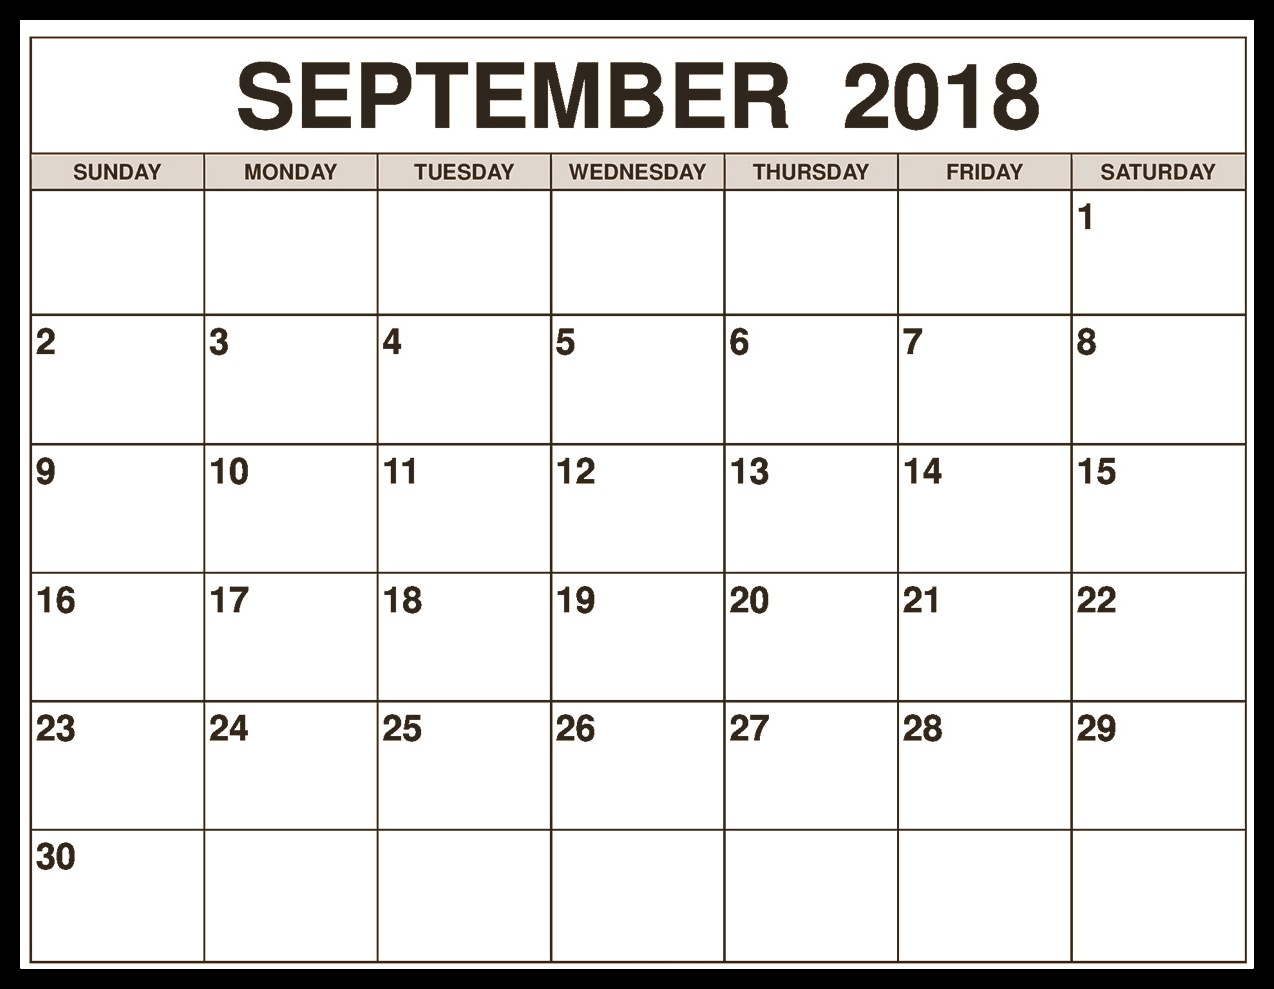 September 2018 Blank Calendar Printable Template